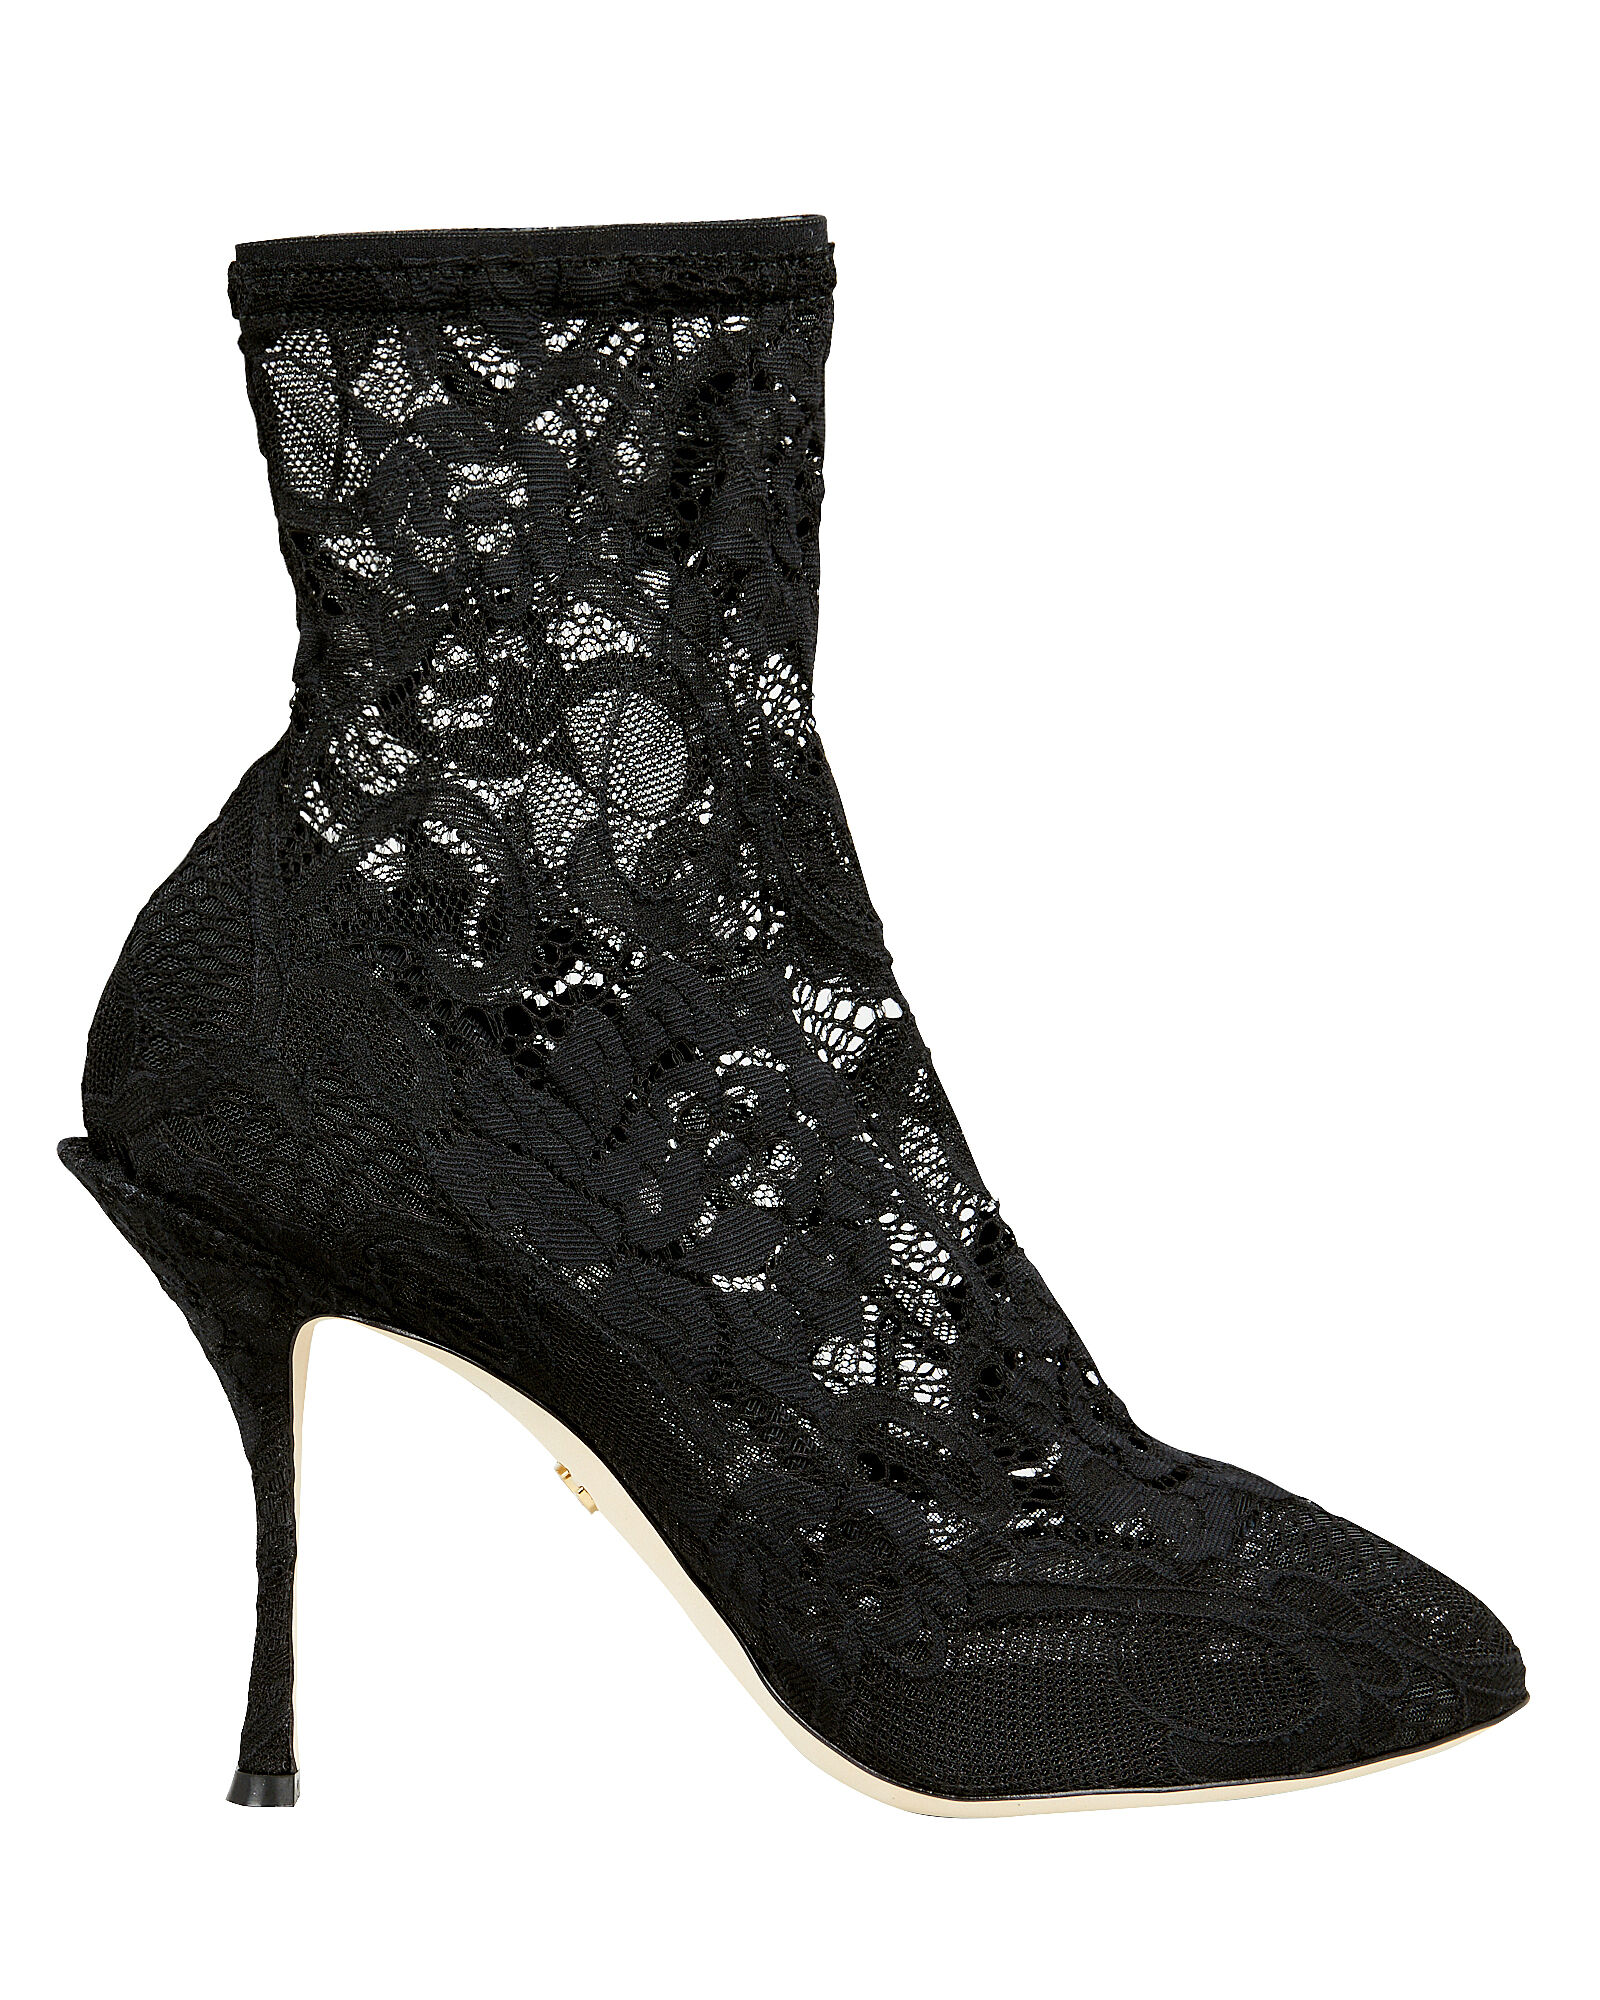 50469dd1f6 Lace Stretch Booties